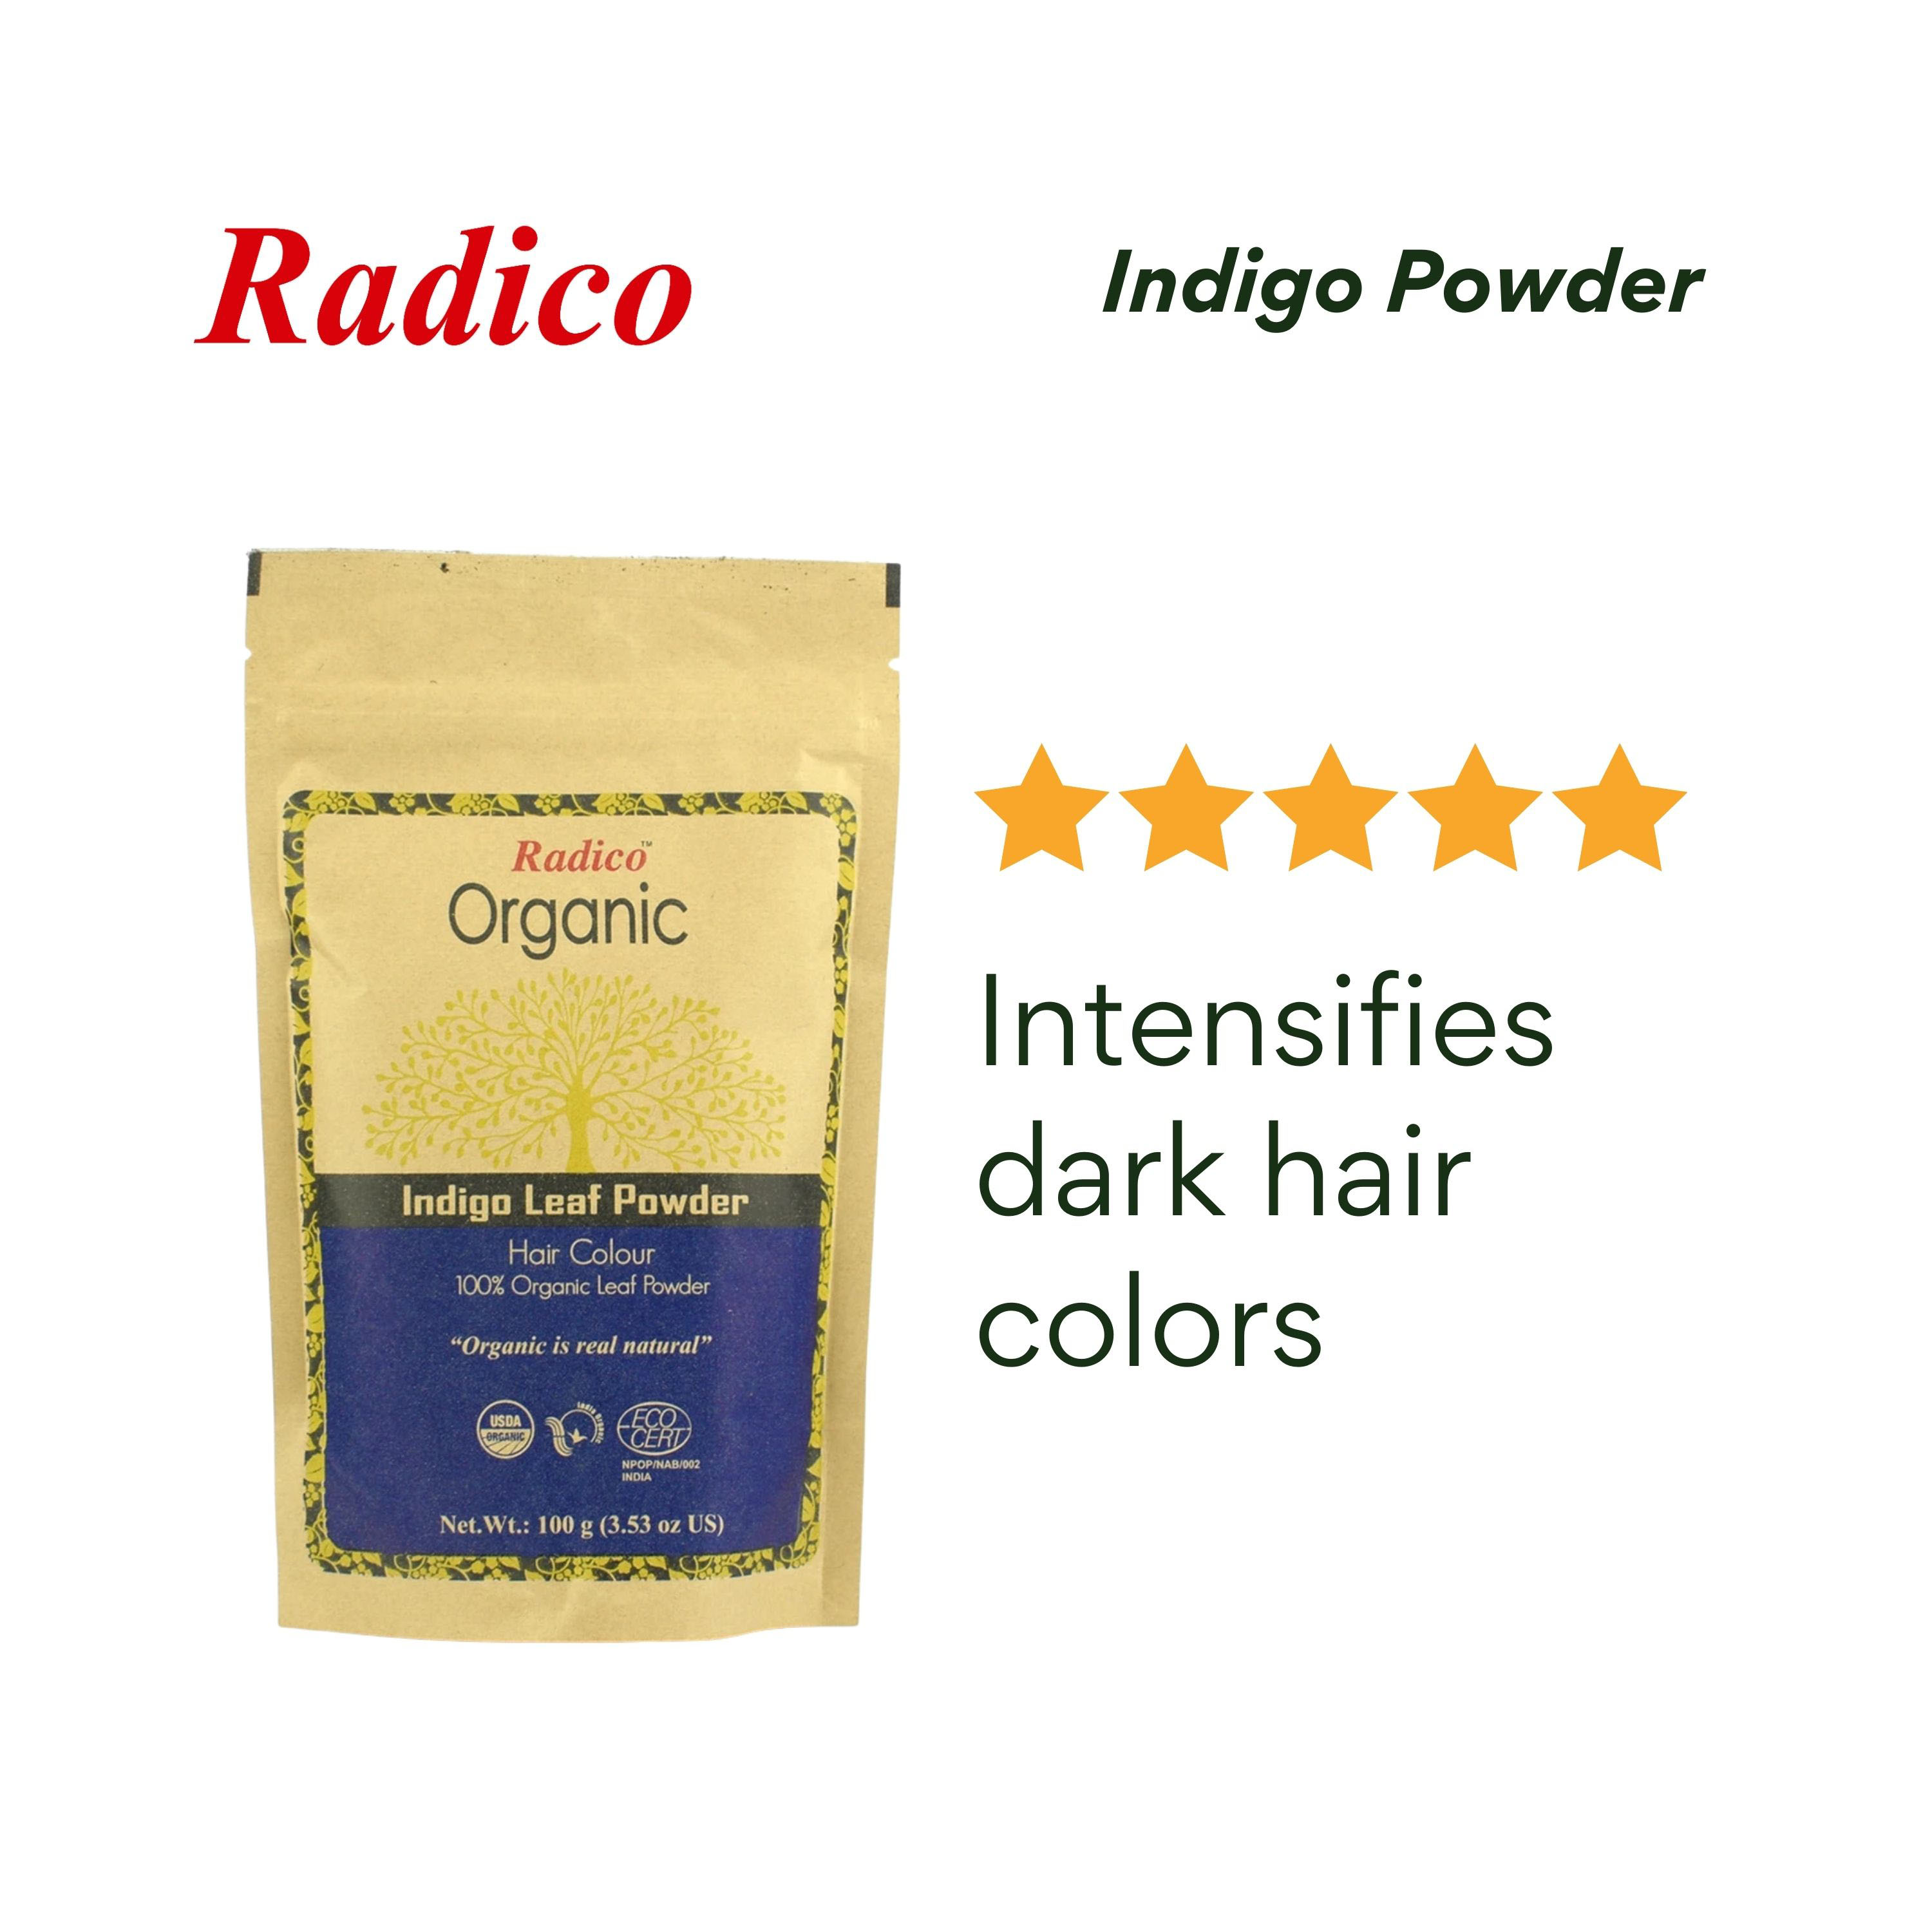 RADICOOrganic Indigo Powder 100G,Color CareGet 10% disc when you purchased minimum P500 worth of Health and Beauty products using COLLECT10